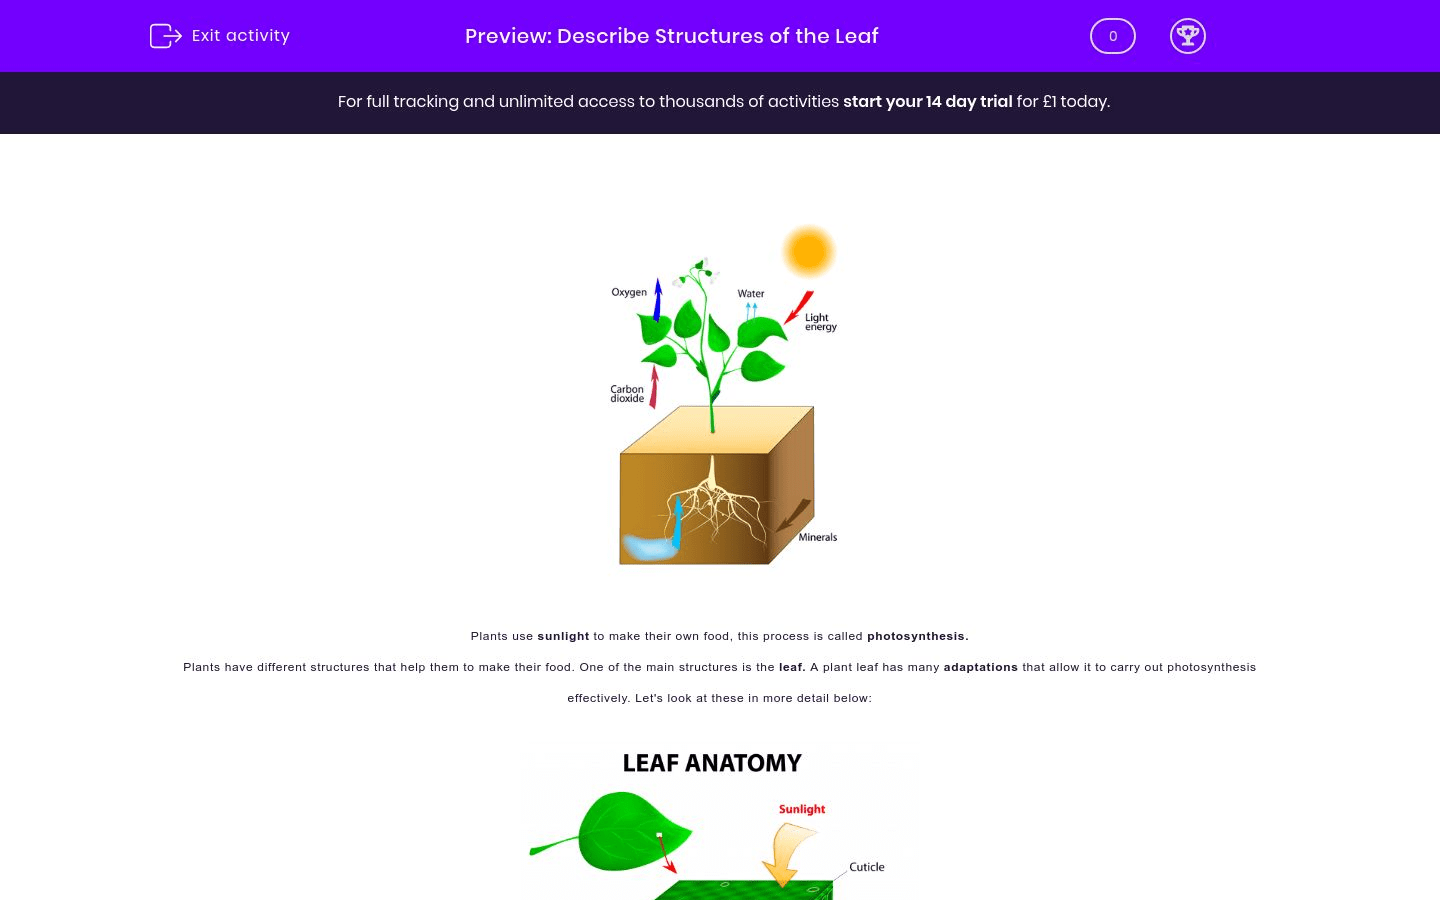 Describe The Structures And Functions Of The Leaf